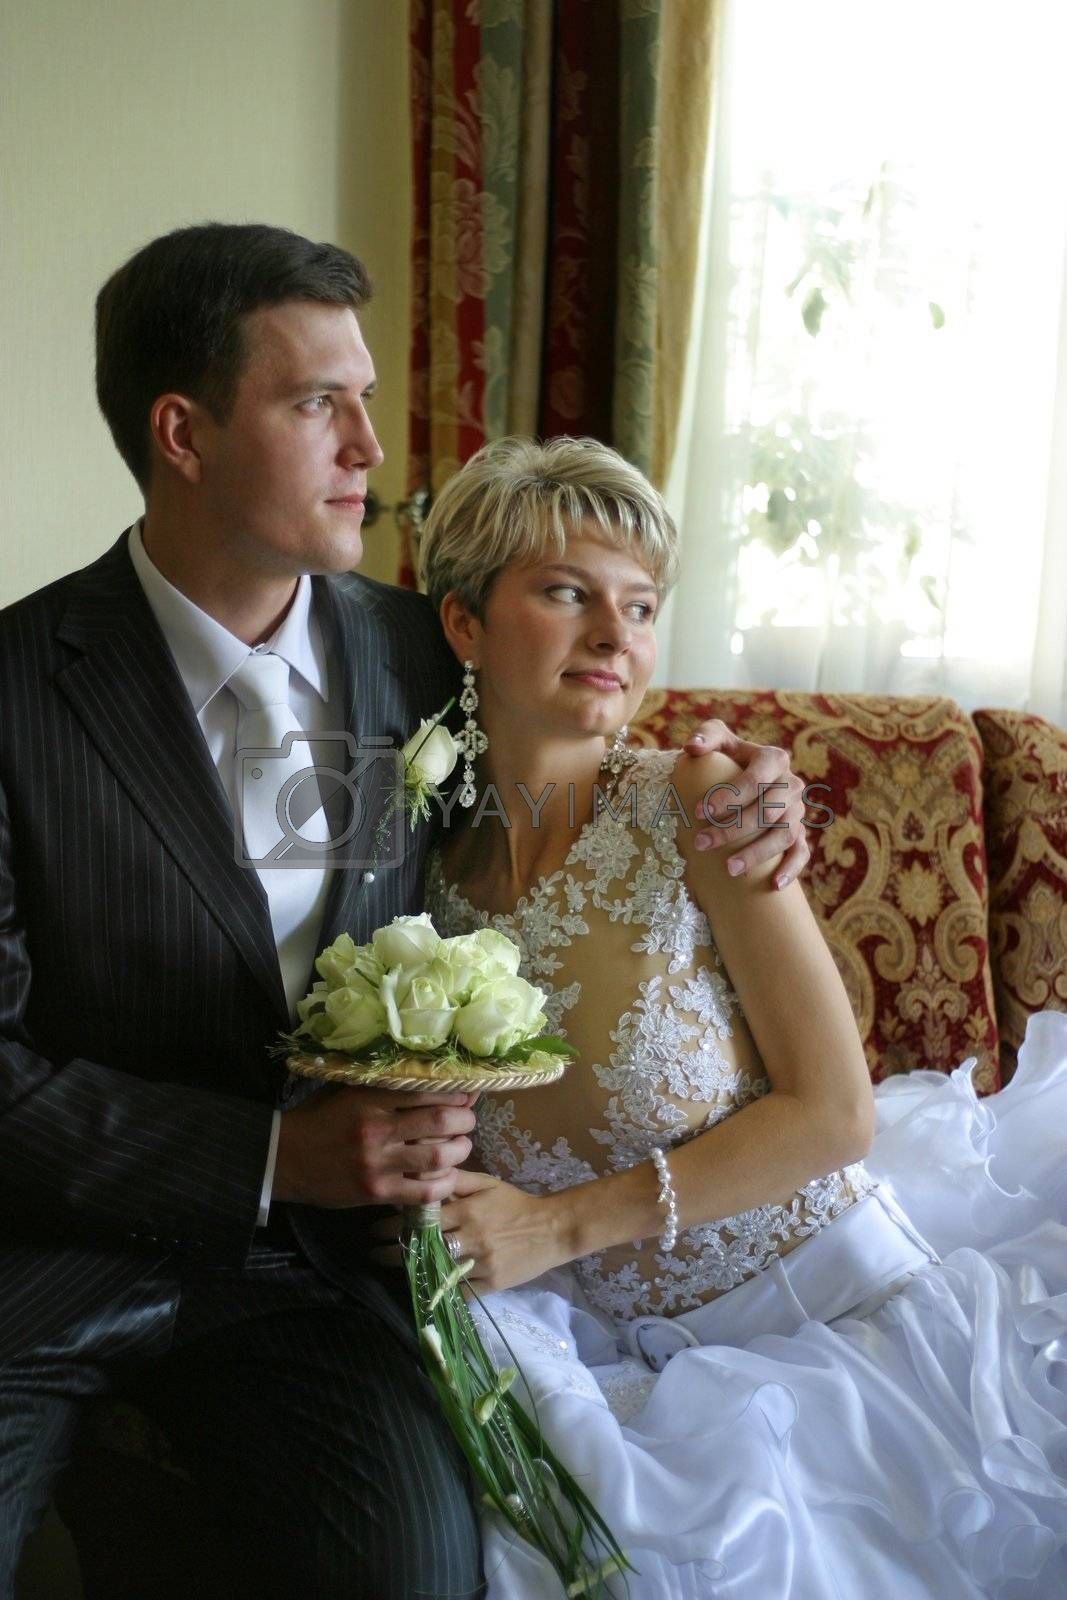 Newly-married couple in an interior